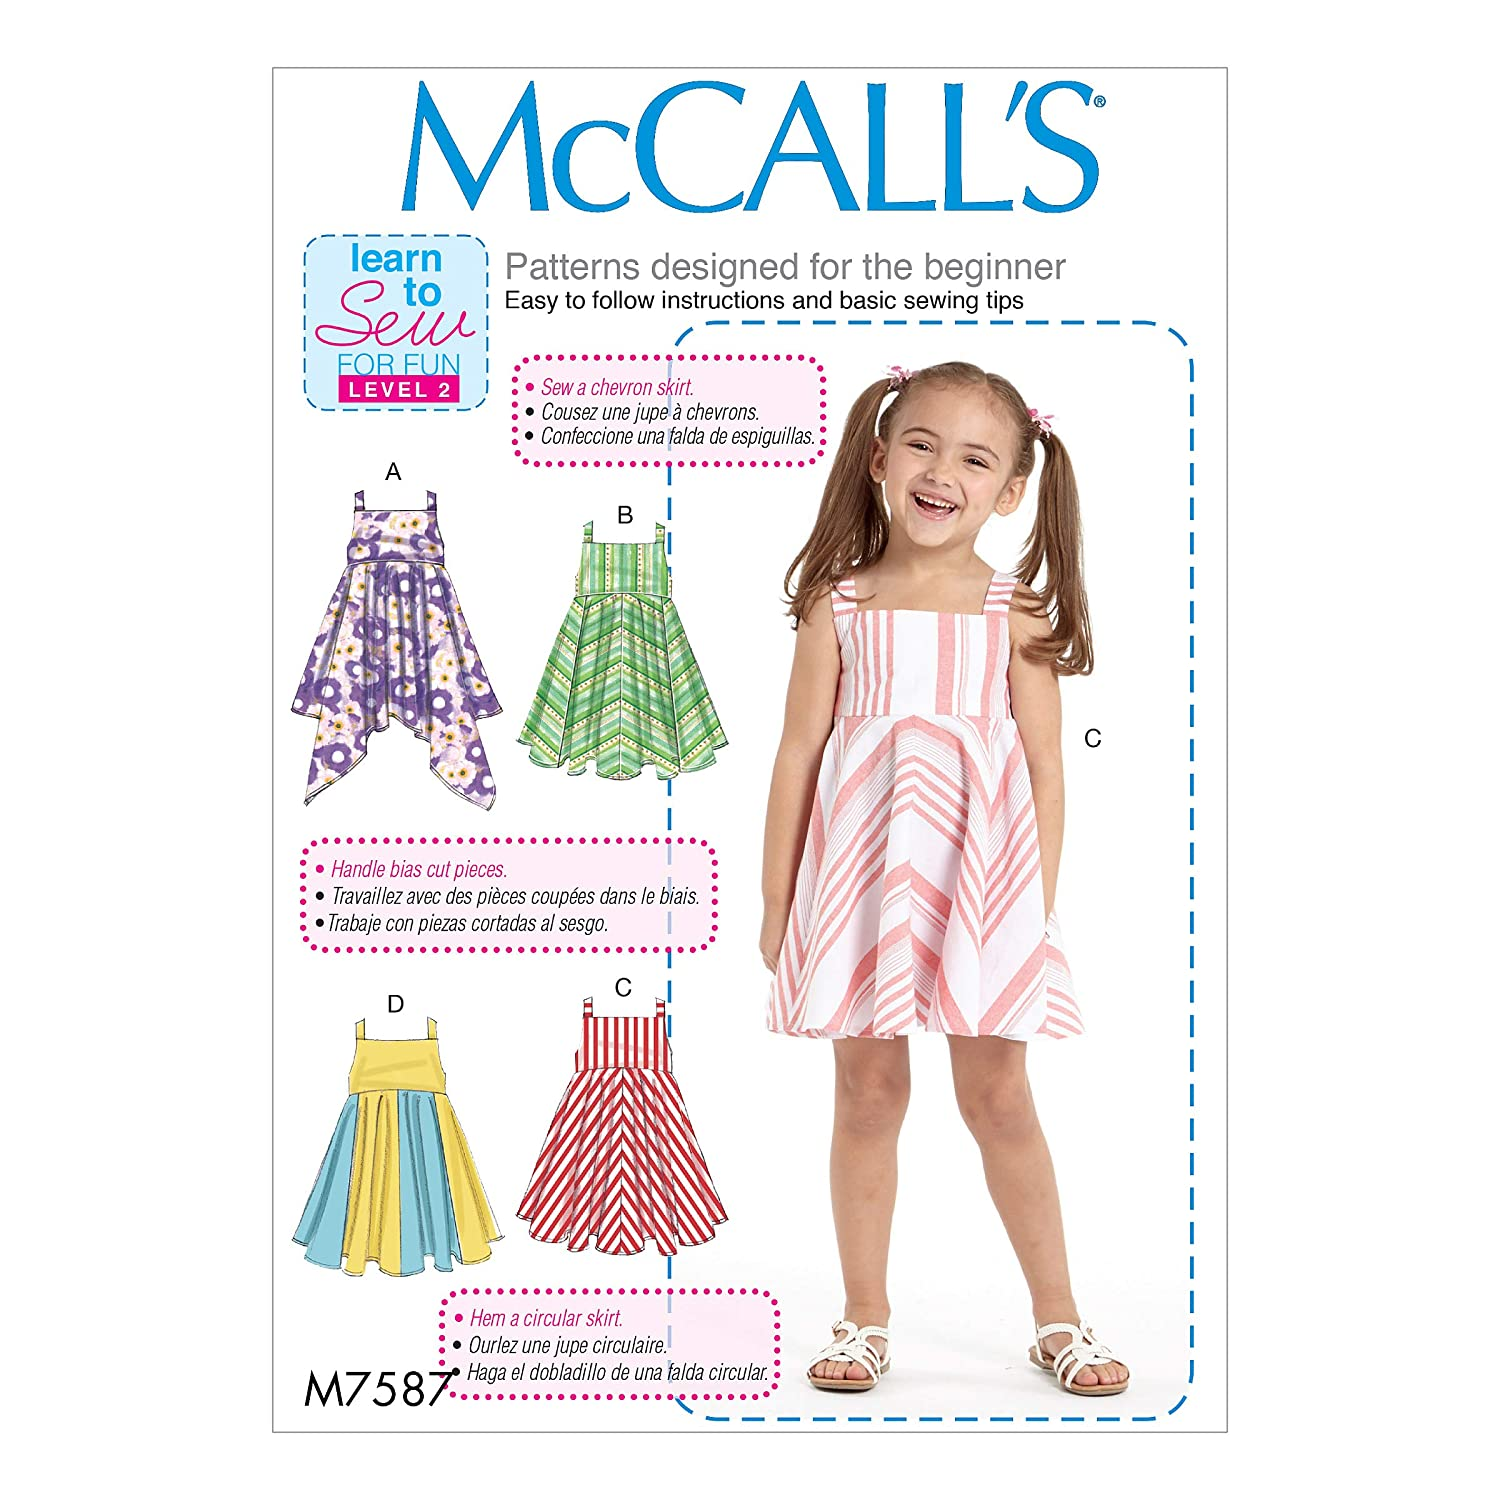 Amazon.com: McCalls M7587CDD Childrens/Girls Dresses with Square Neck, 2-3-4-5: Arts, Crafts & Sewing